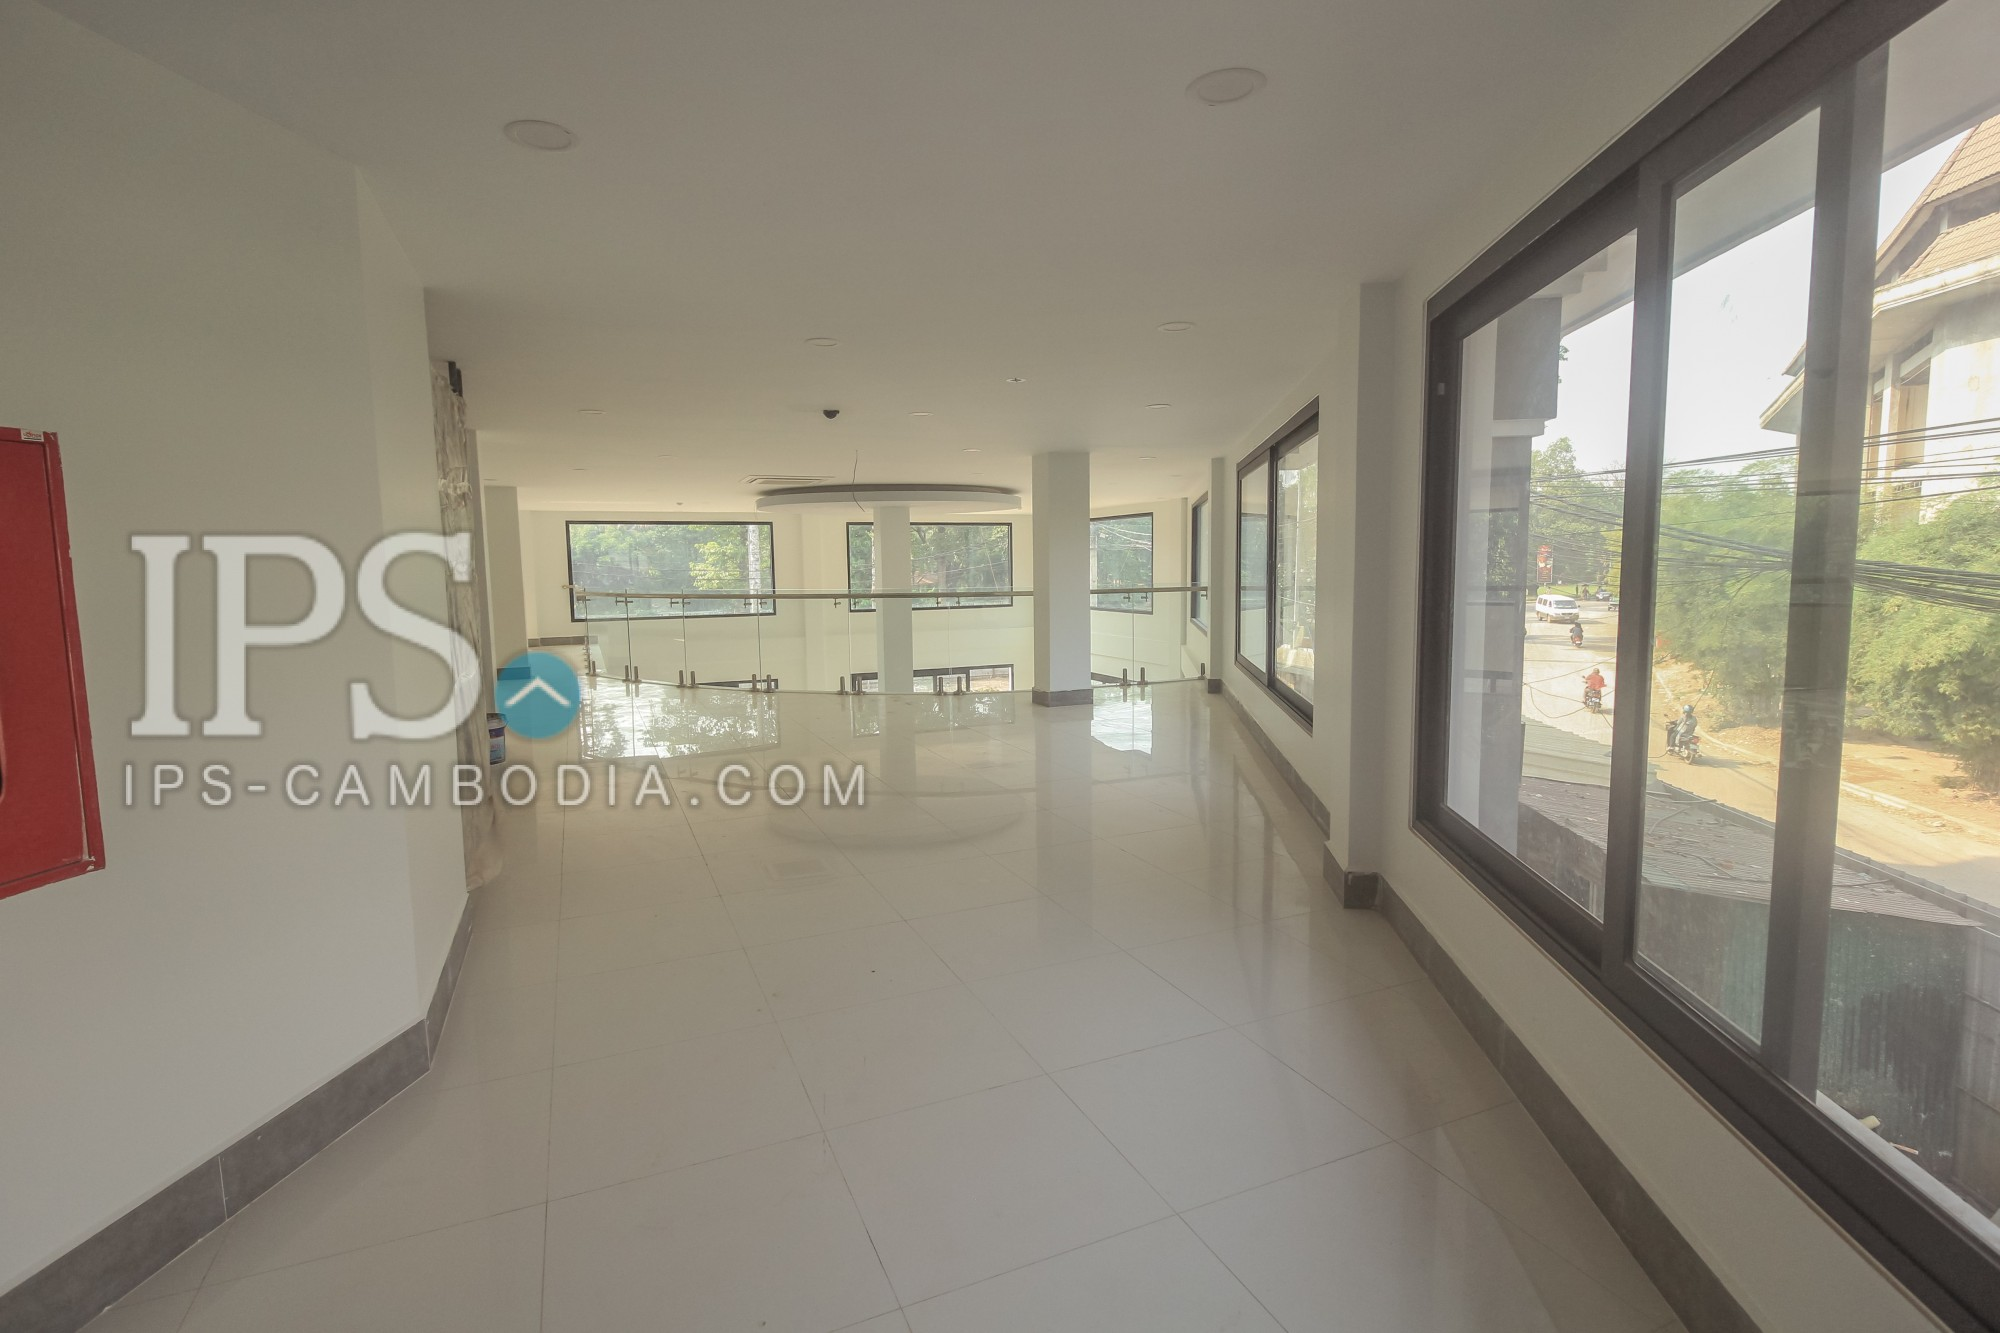 Apartment Building with Ground Floor Commercial Space for Rent - Siem Reap